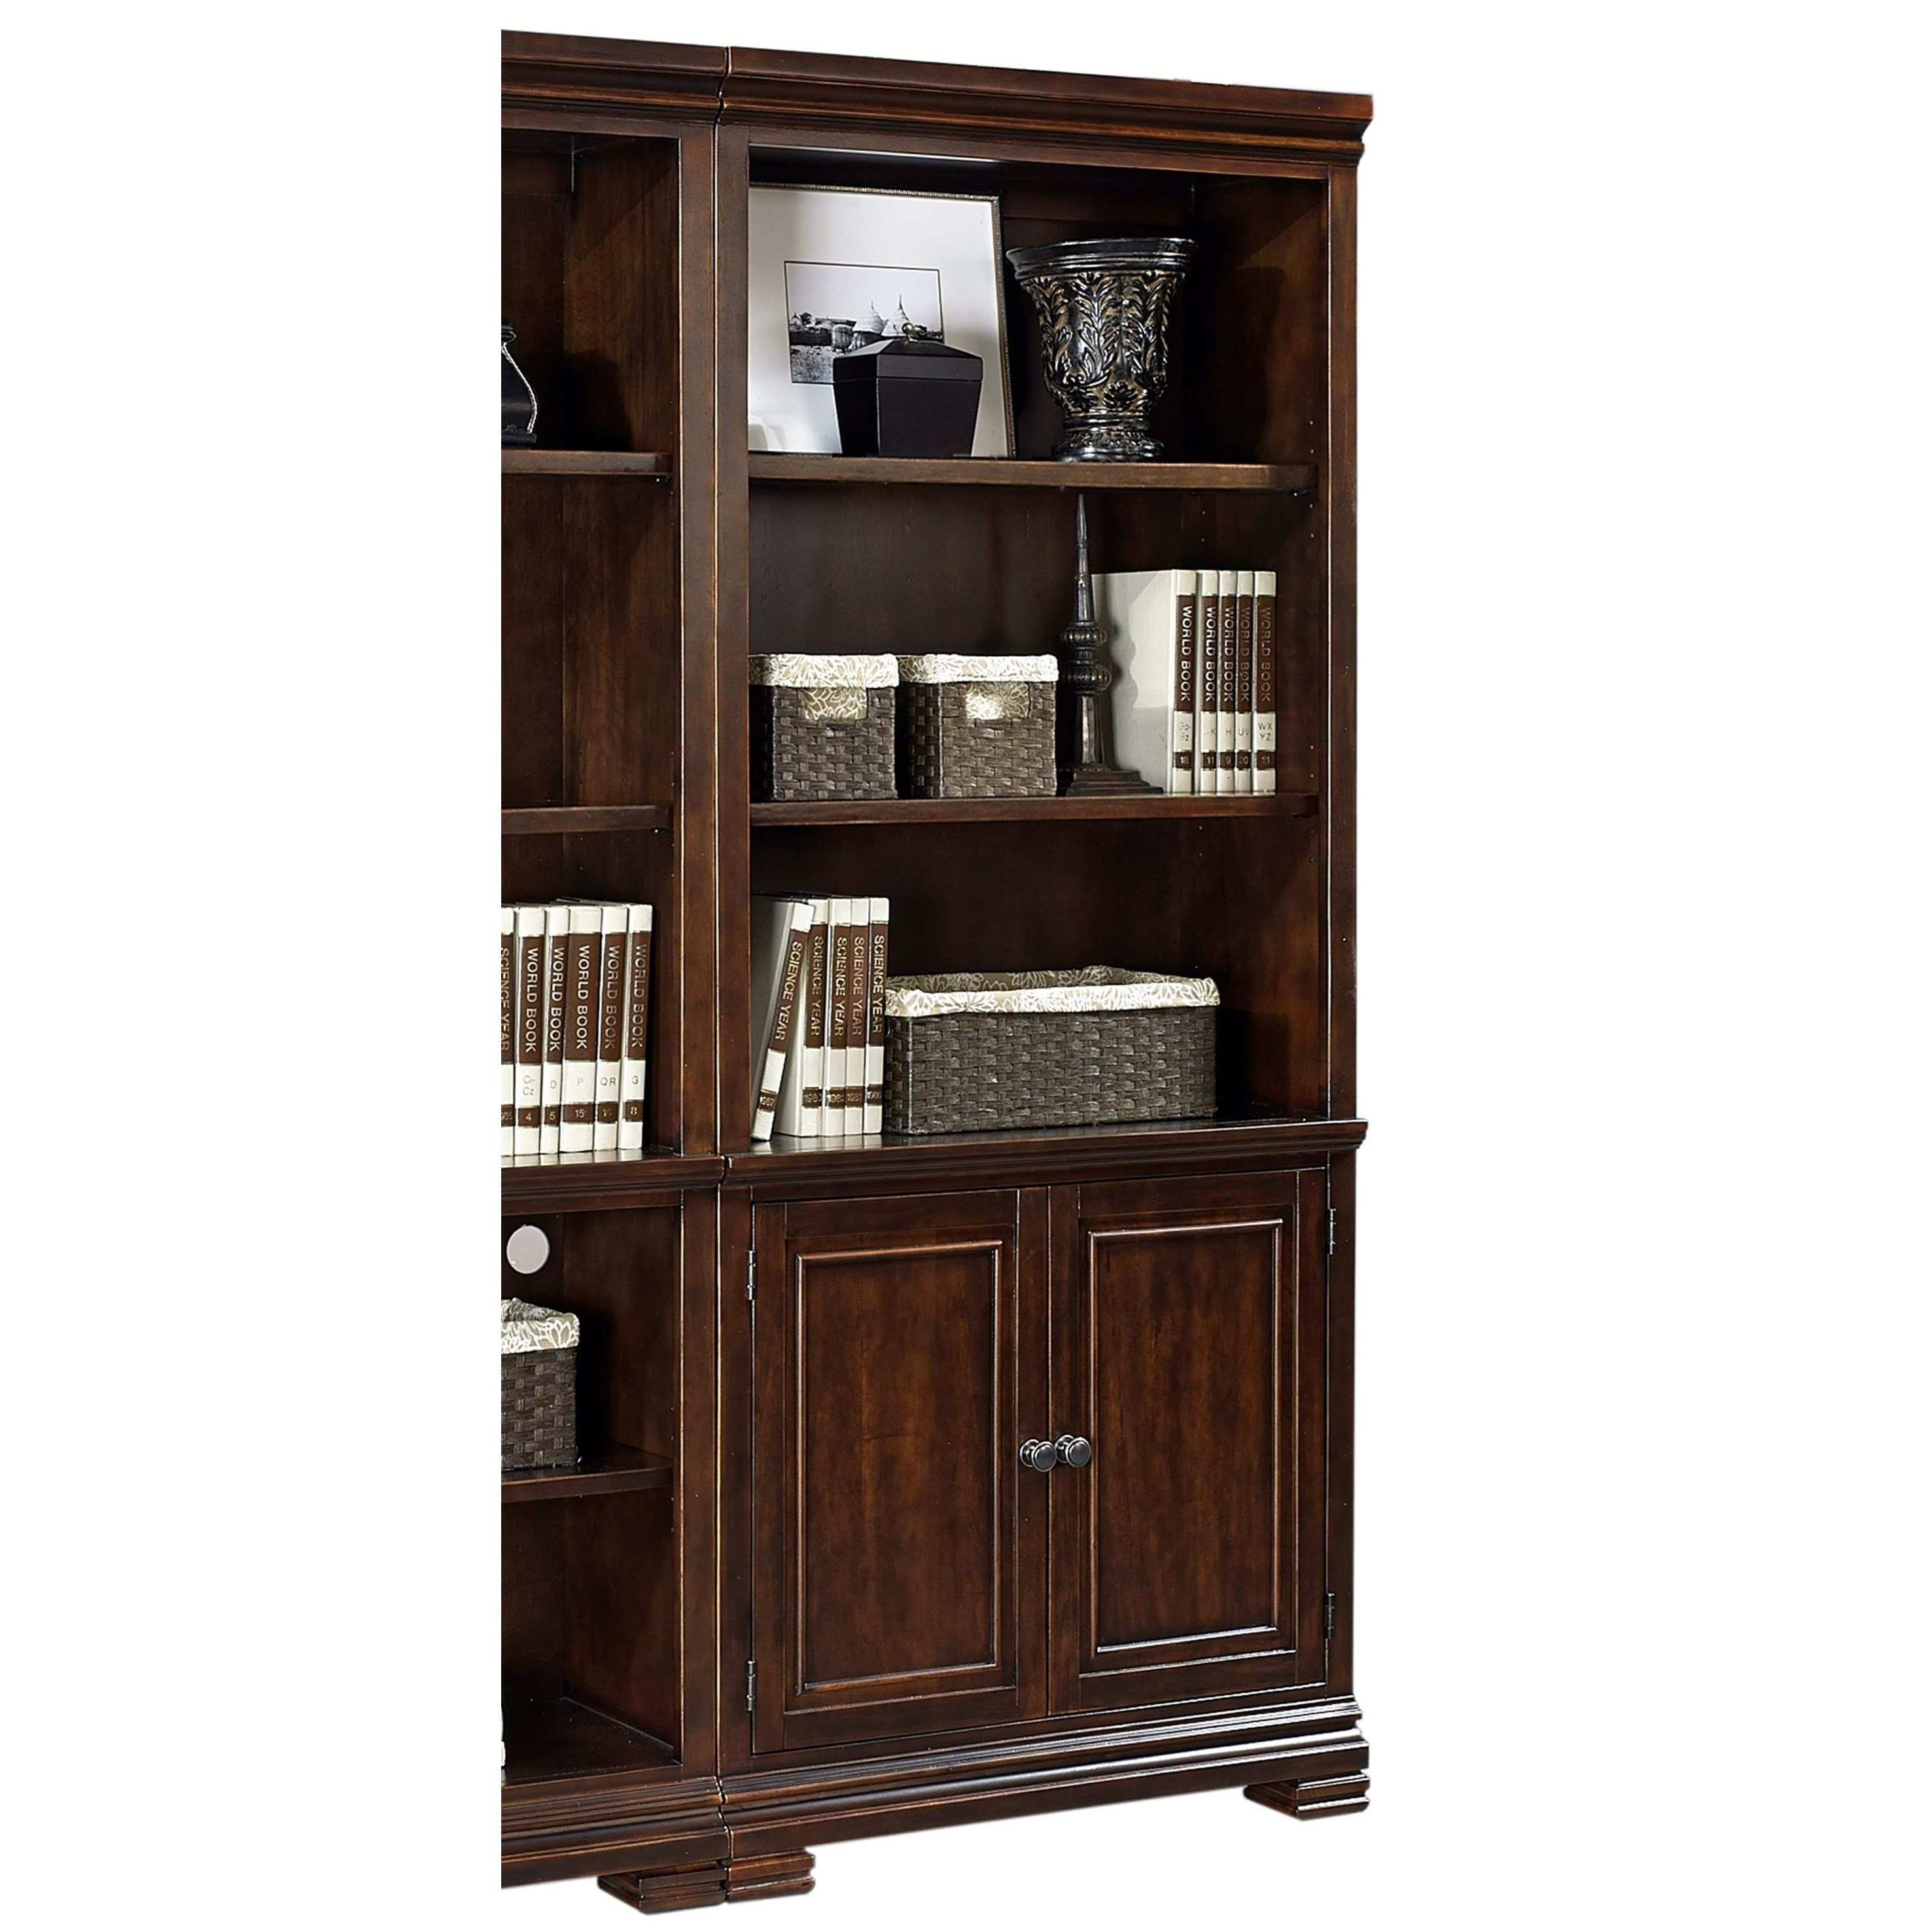 Aspenhome Weston Door Bookcase - Item Number: I35-332